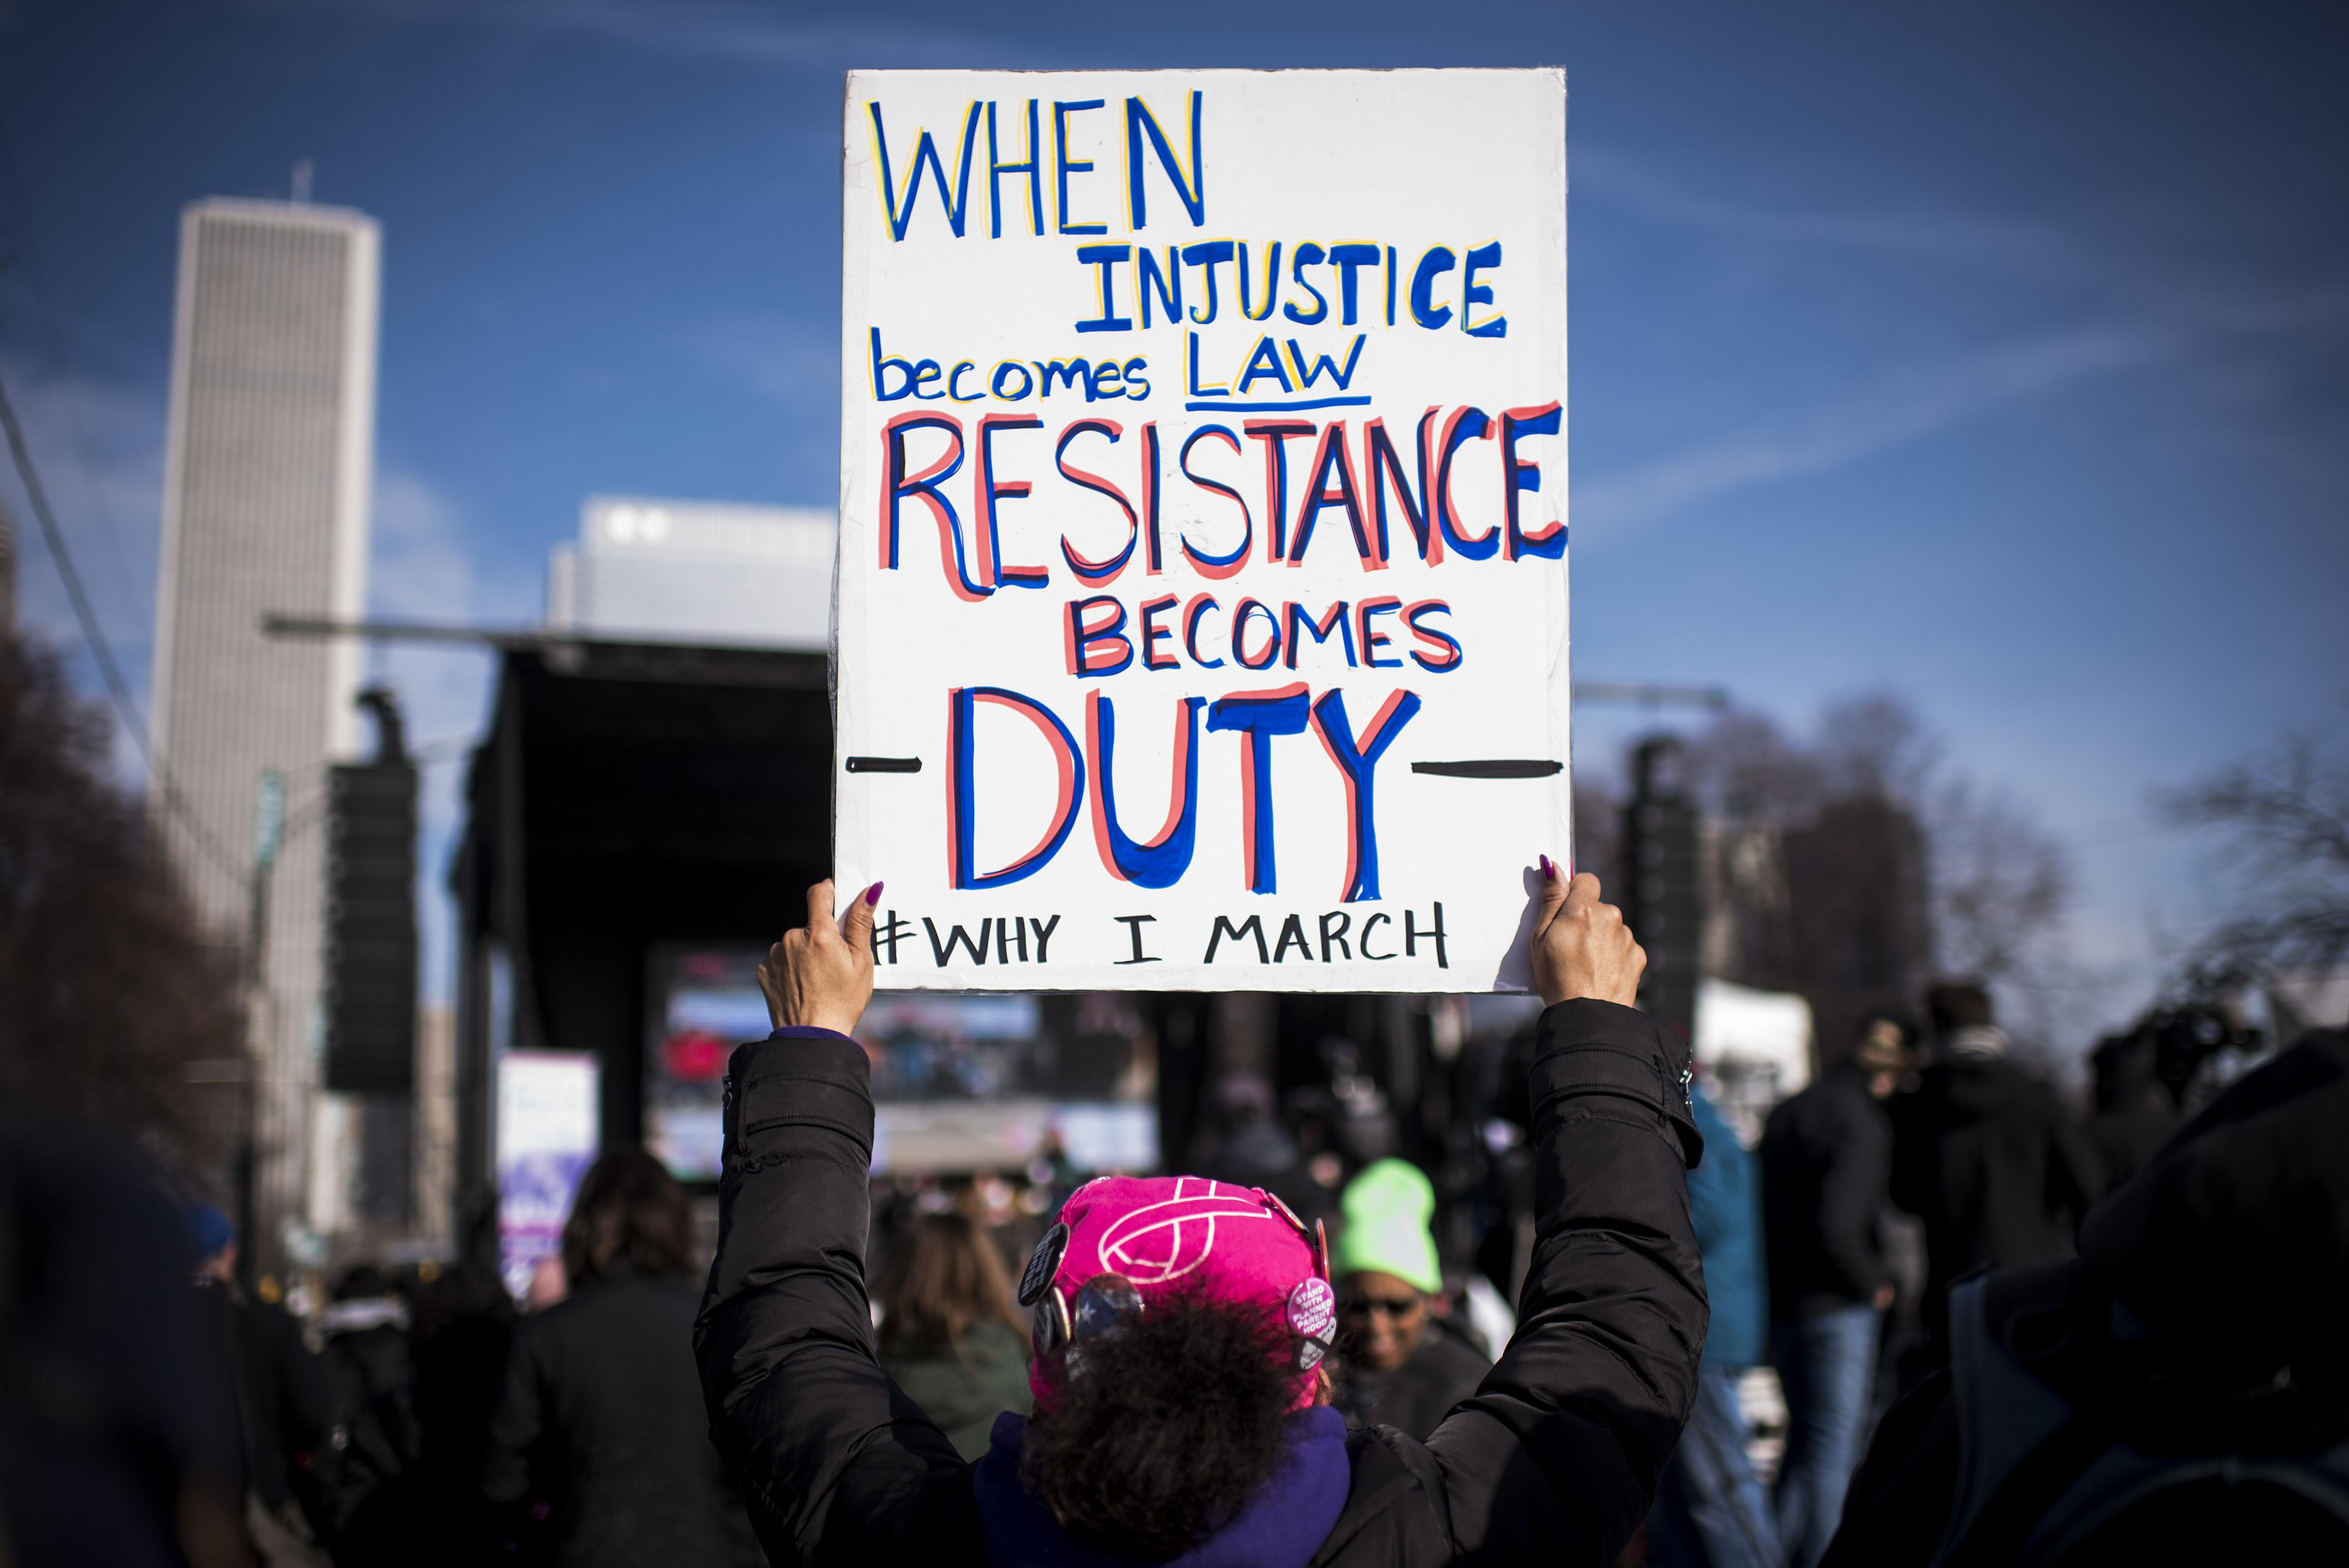 """<p>A demonstrator holds a sign that reads """"When Injustice Becomes Law, Resistance Becomes Duty"""" during the second annual Women's March in Chicago, Ill., on Saturday, Jan. 20, 2018. (Photo: Christopher Dilts/Bloomberg via Getty Images) </p>"""